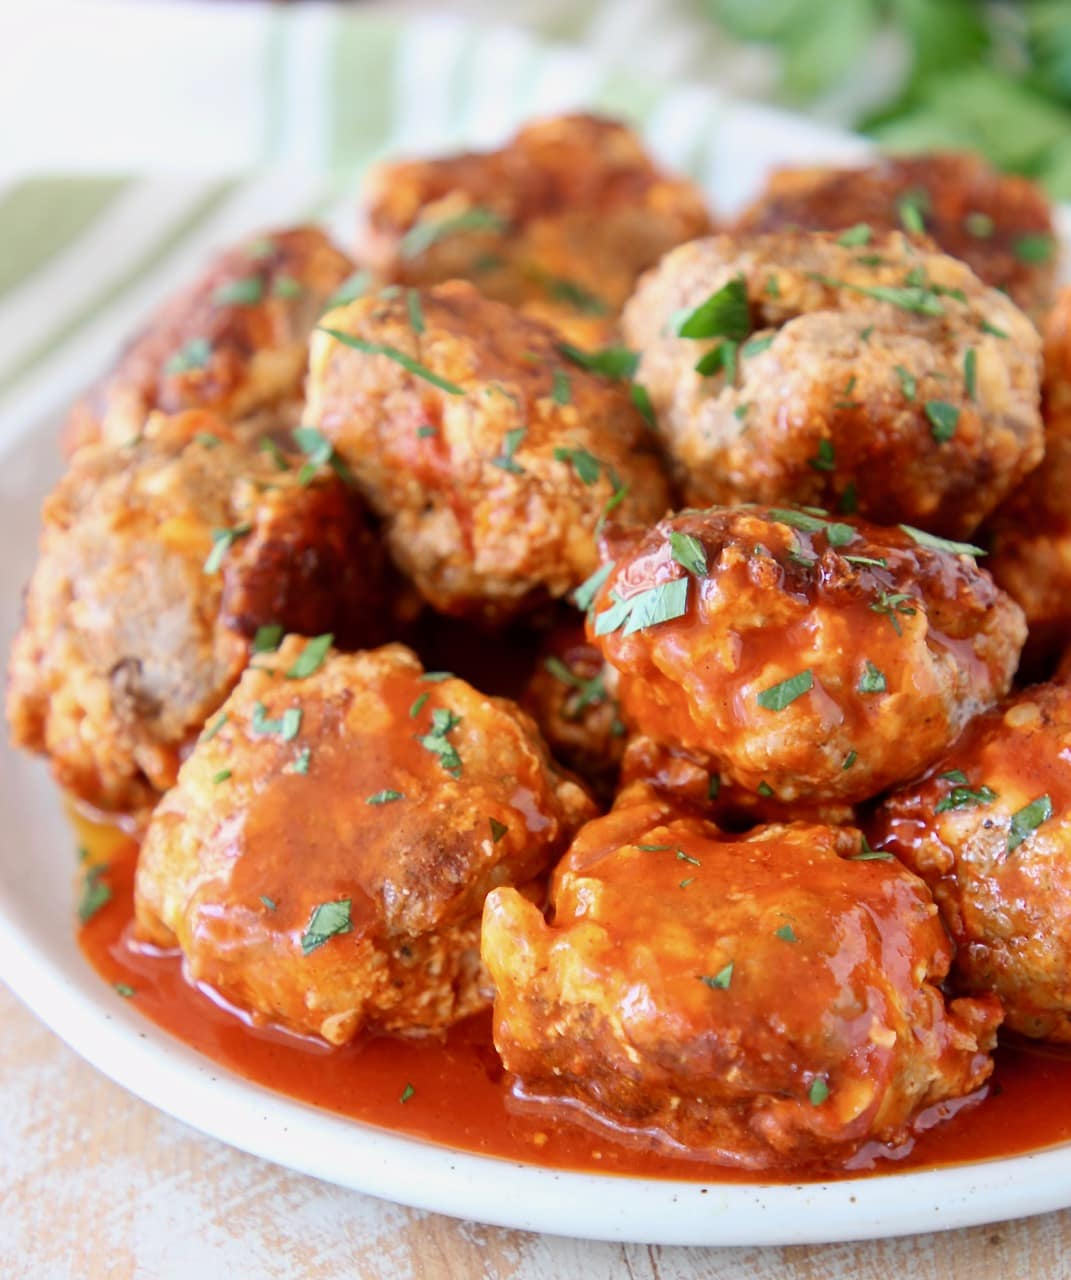 Cheesy Sausage Balls with Buffalo Sauce and Cilantro Garnish on Plate with Green Striped Towel